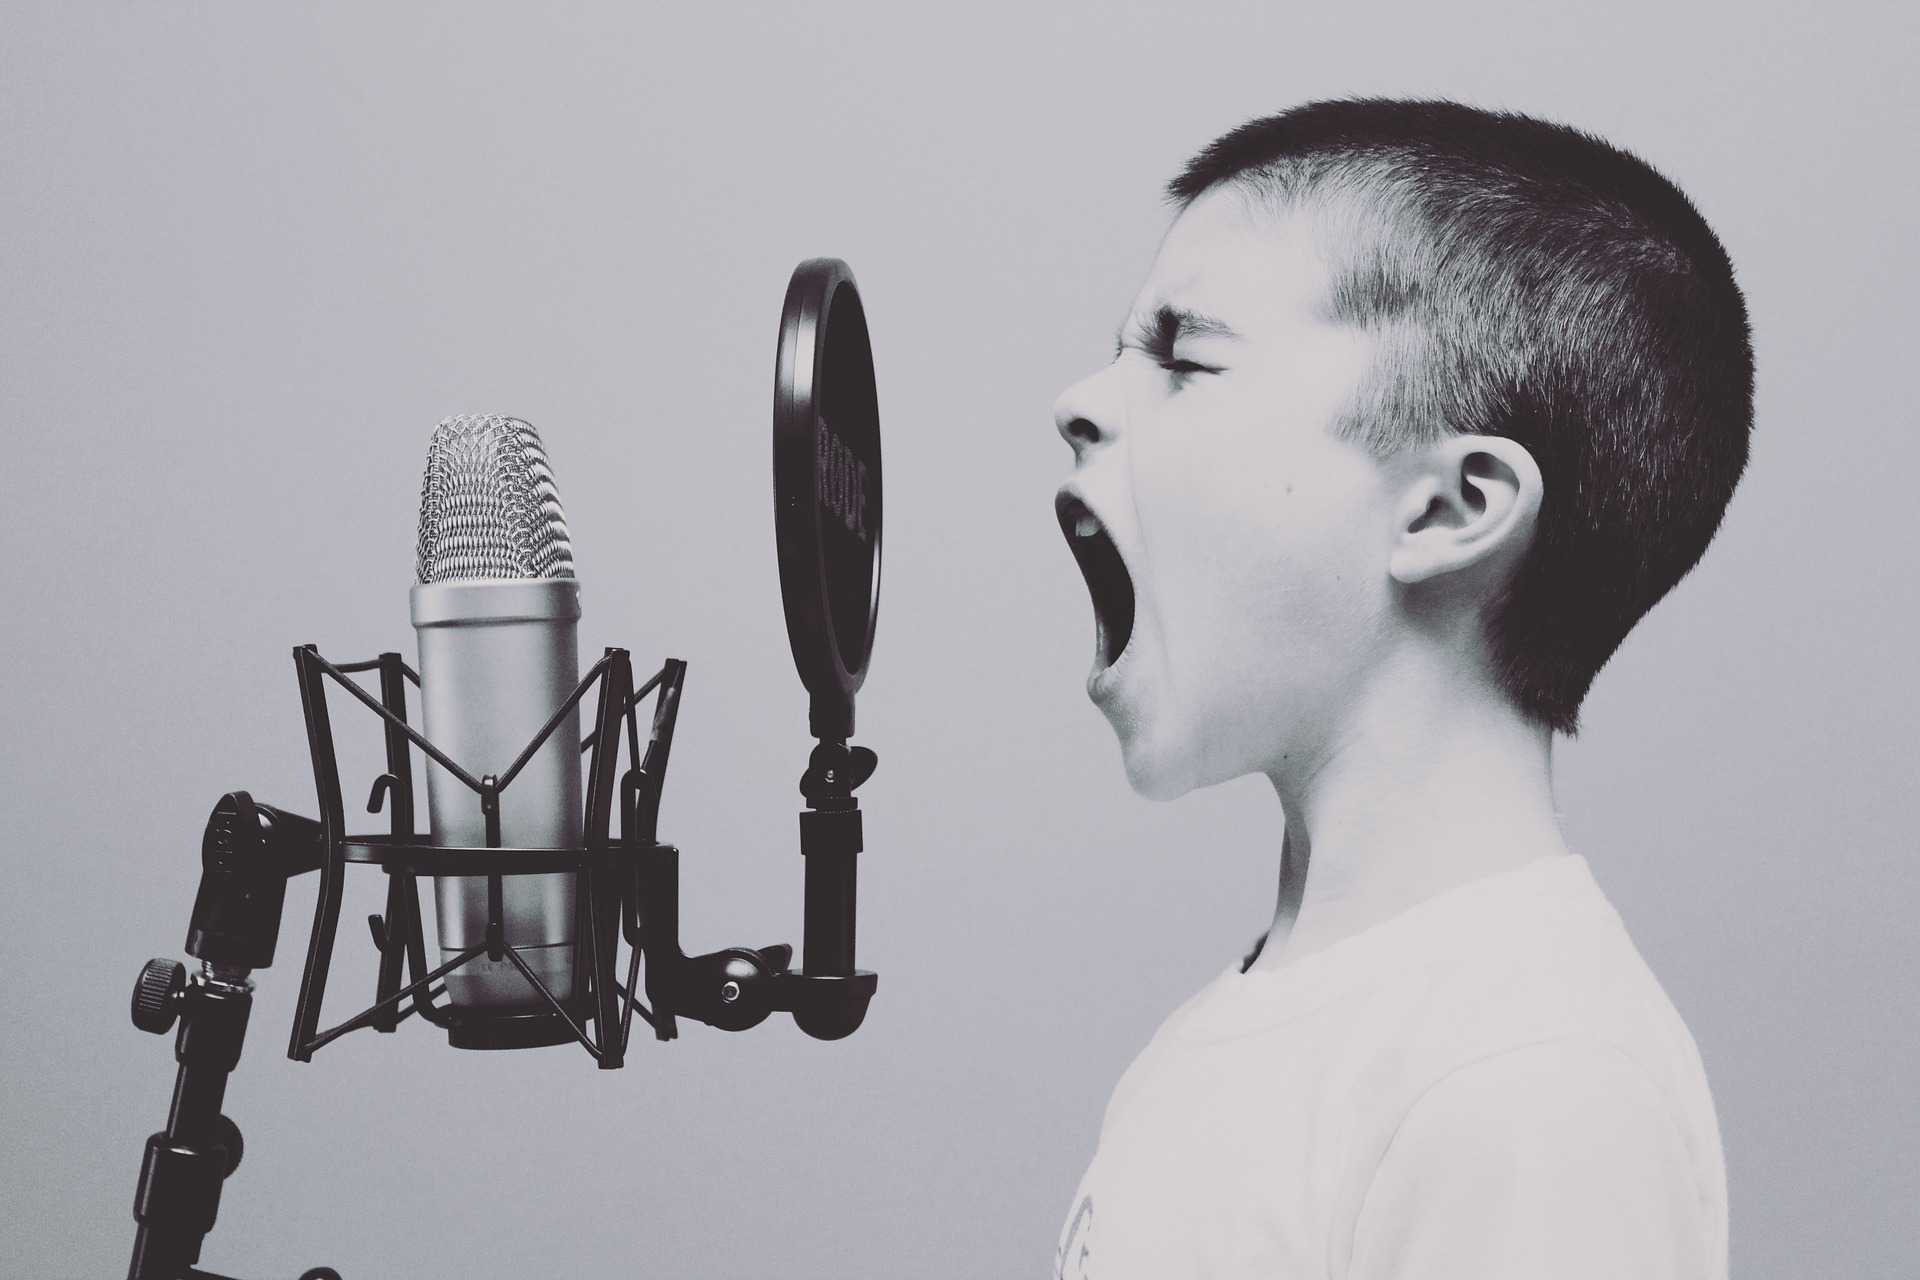 boy in profile belting into a studio microphone